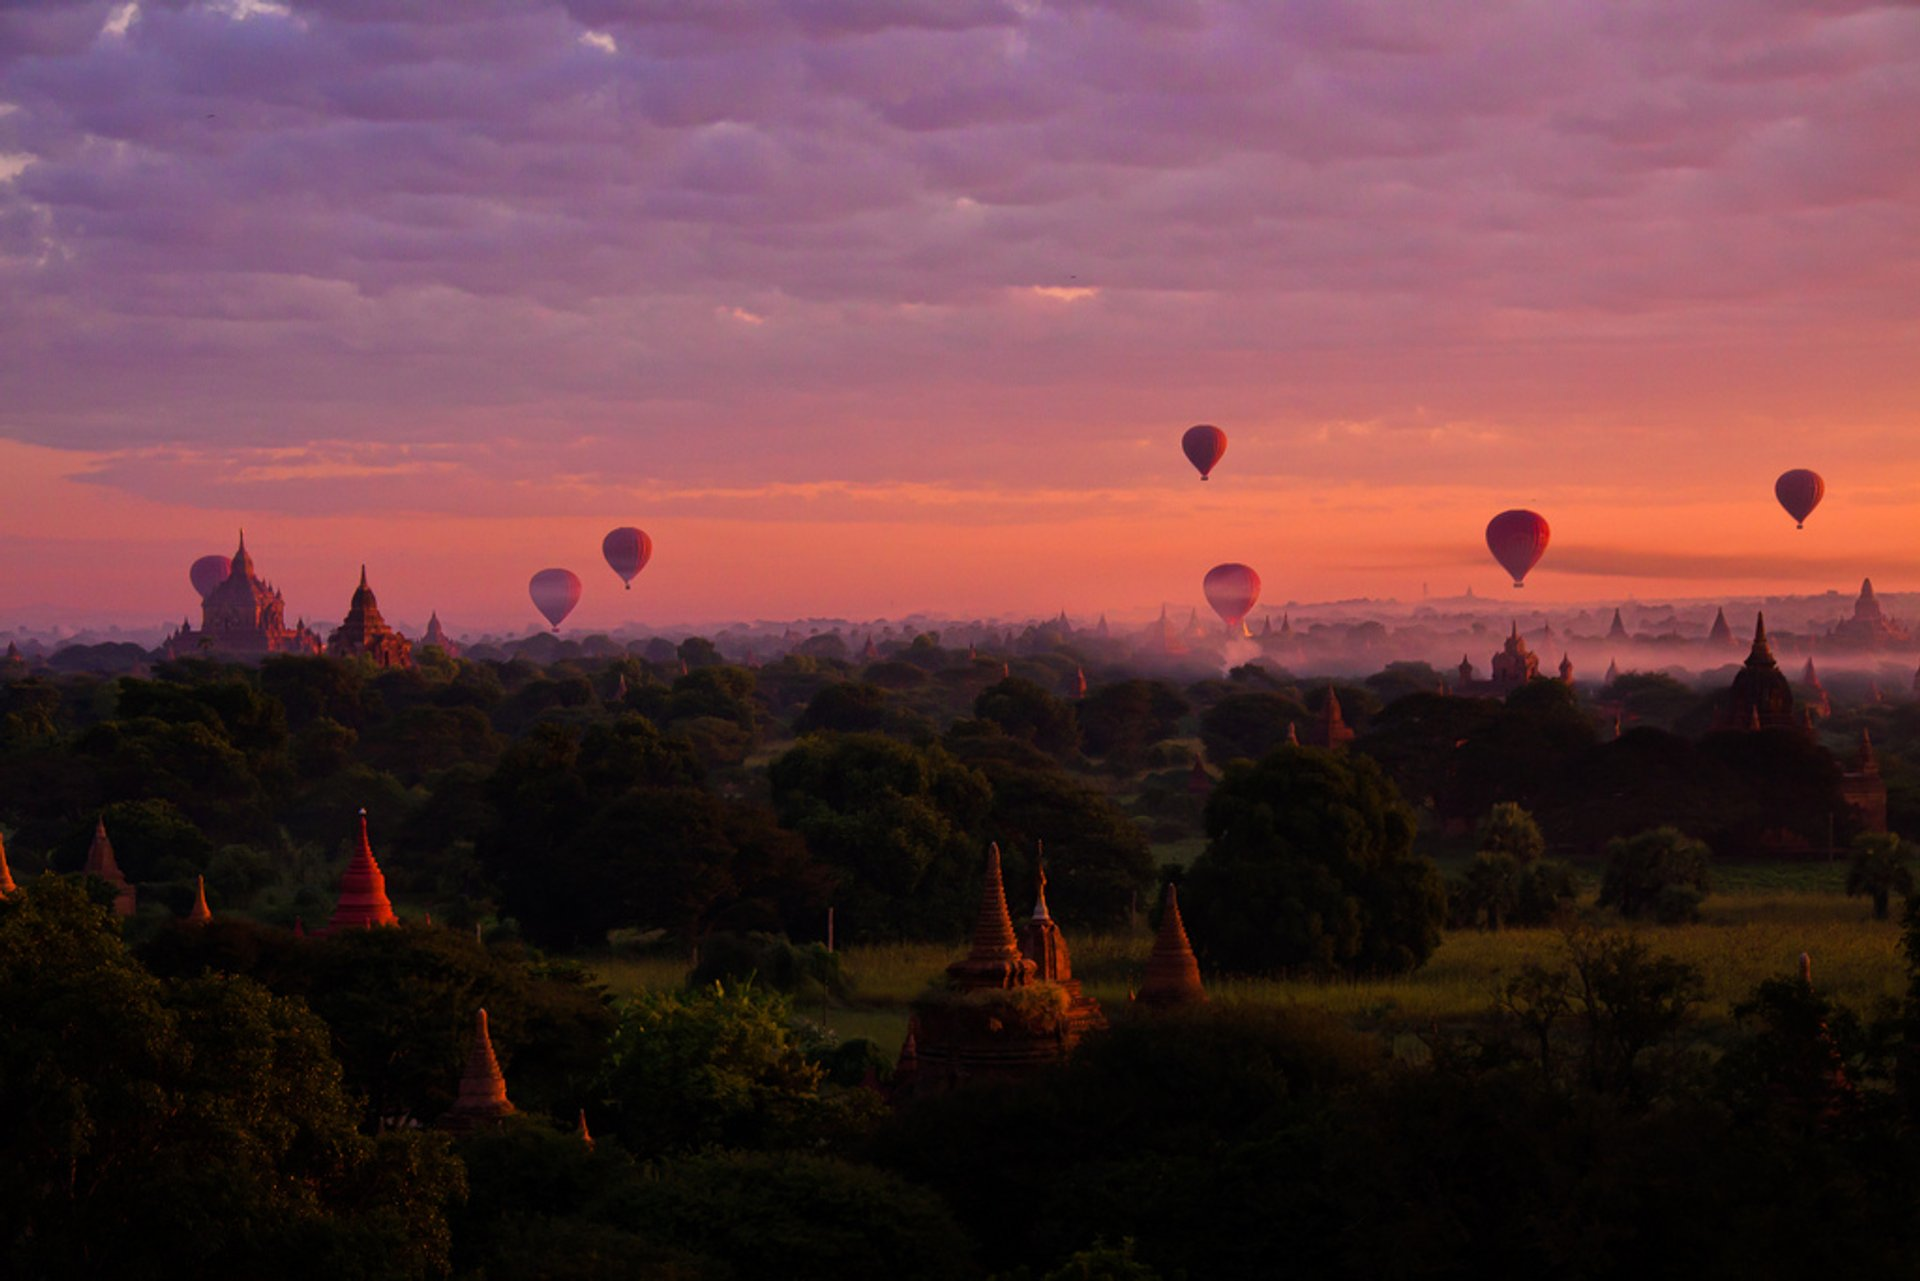 Best time to see Air Ballooning over Bagan in Myanmar 2020